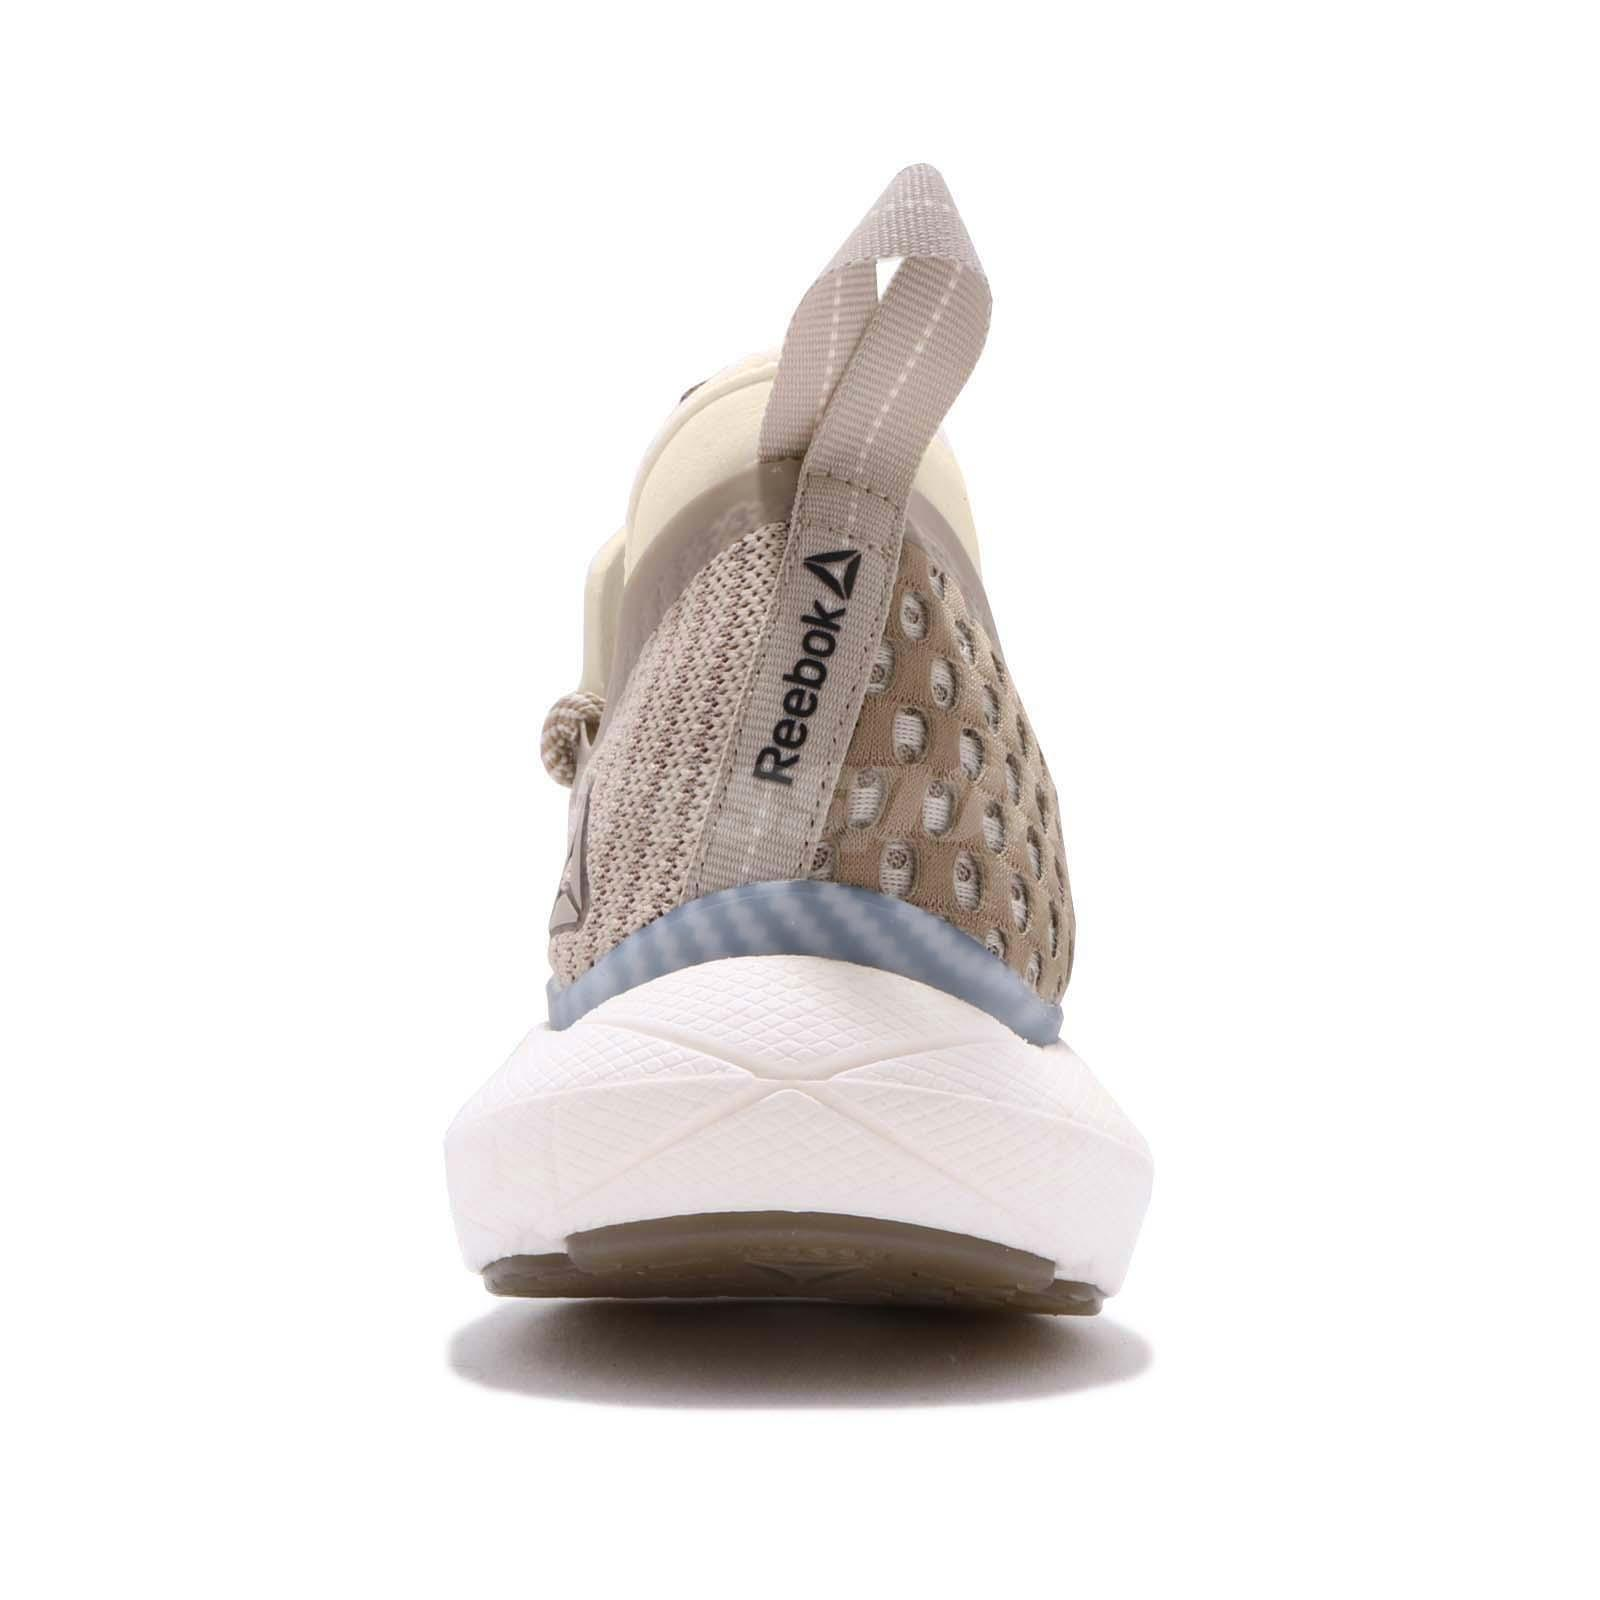 bed51936a1c Reebok Sole Fury Floatride Sand Beige Men Running Lifestyle Shoes ...